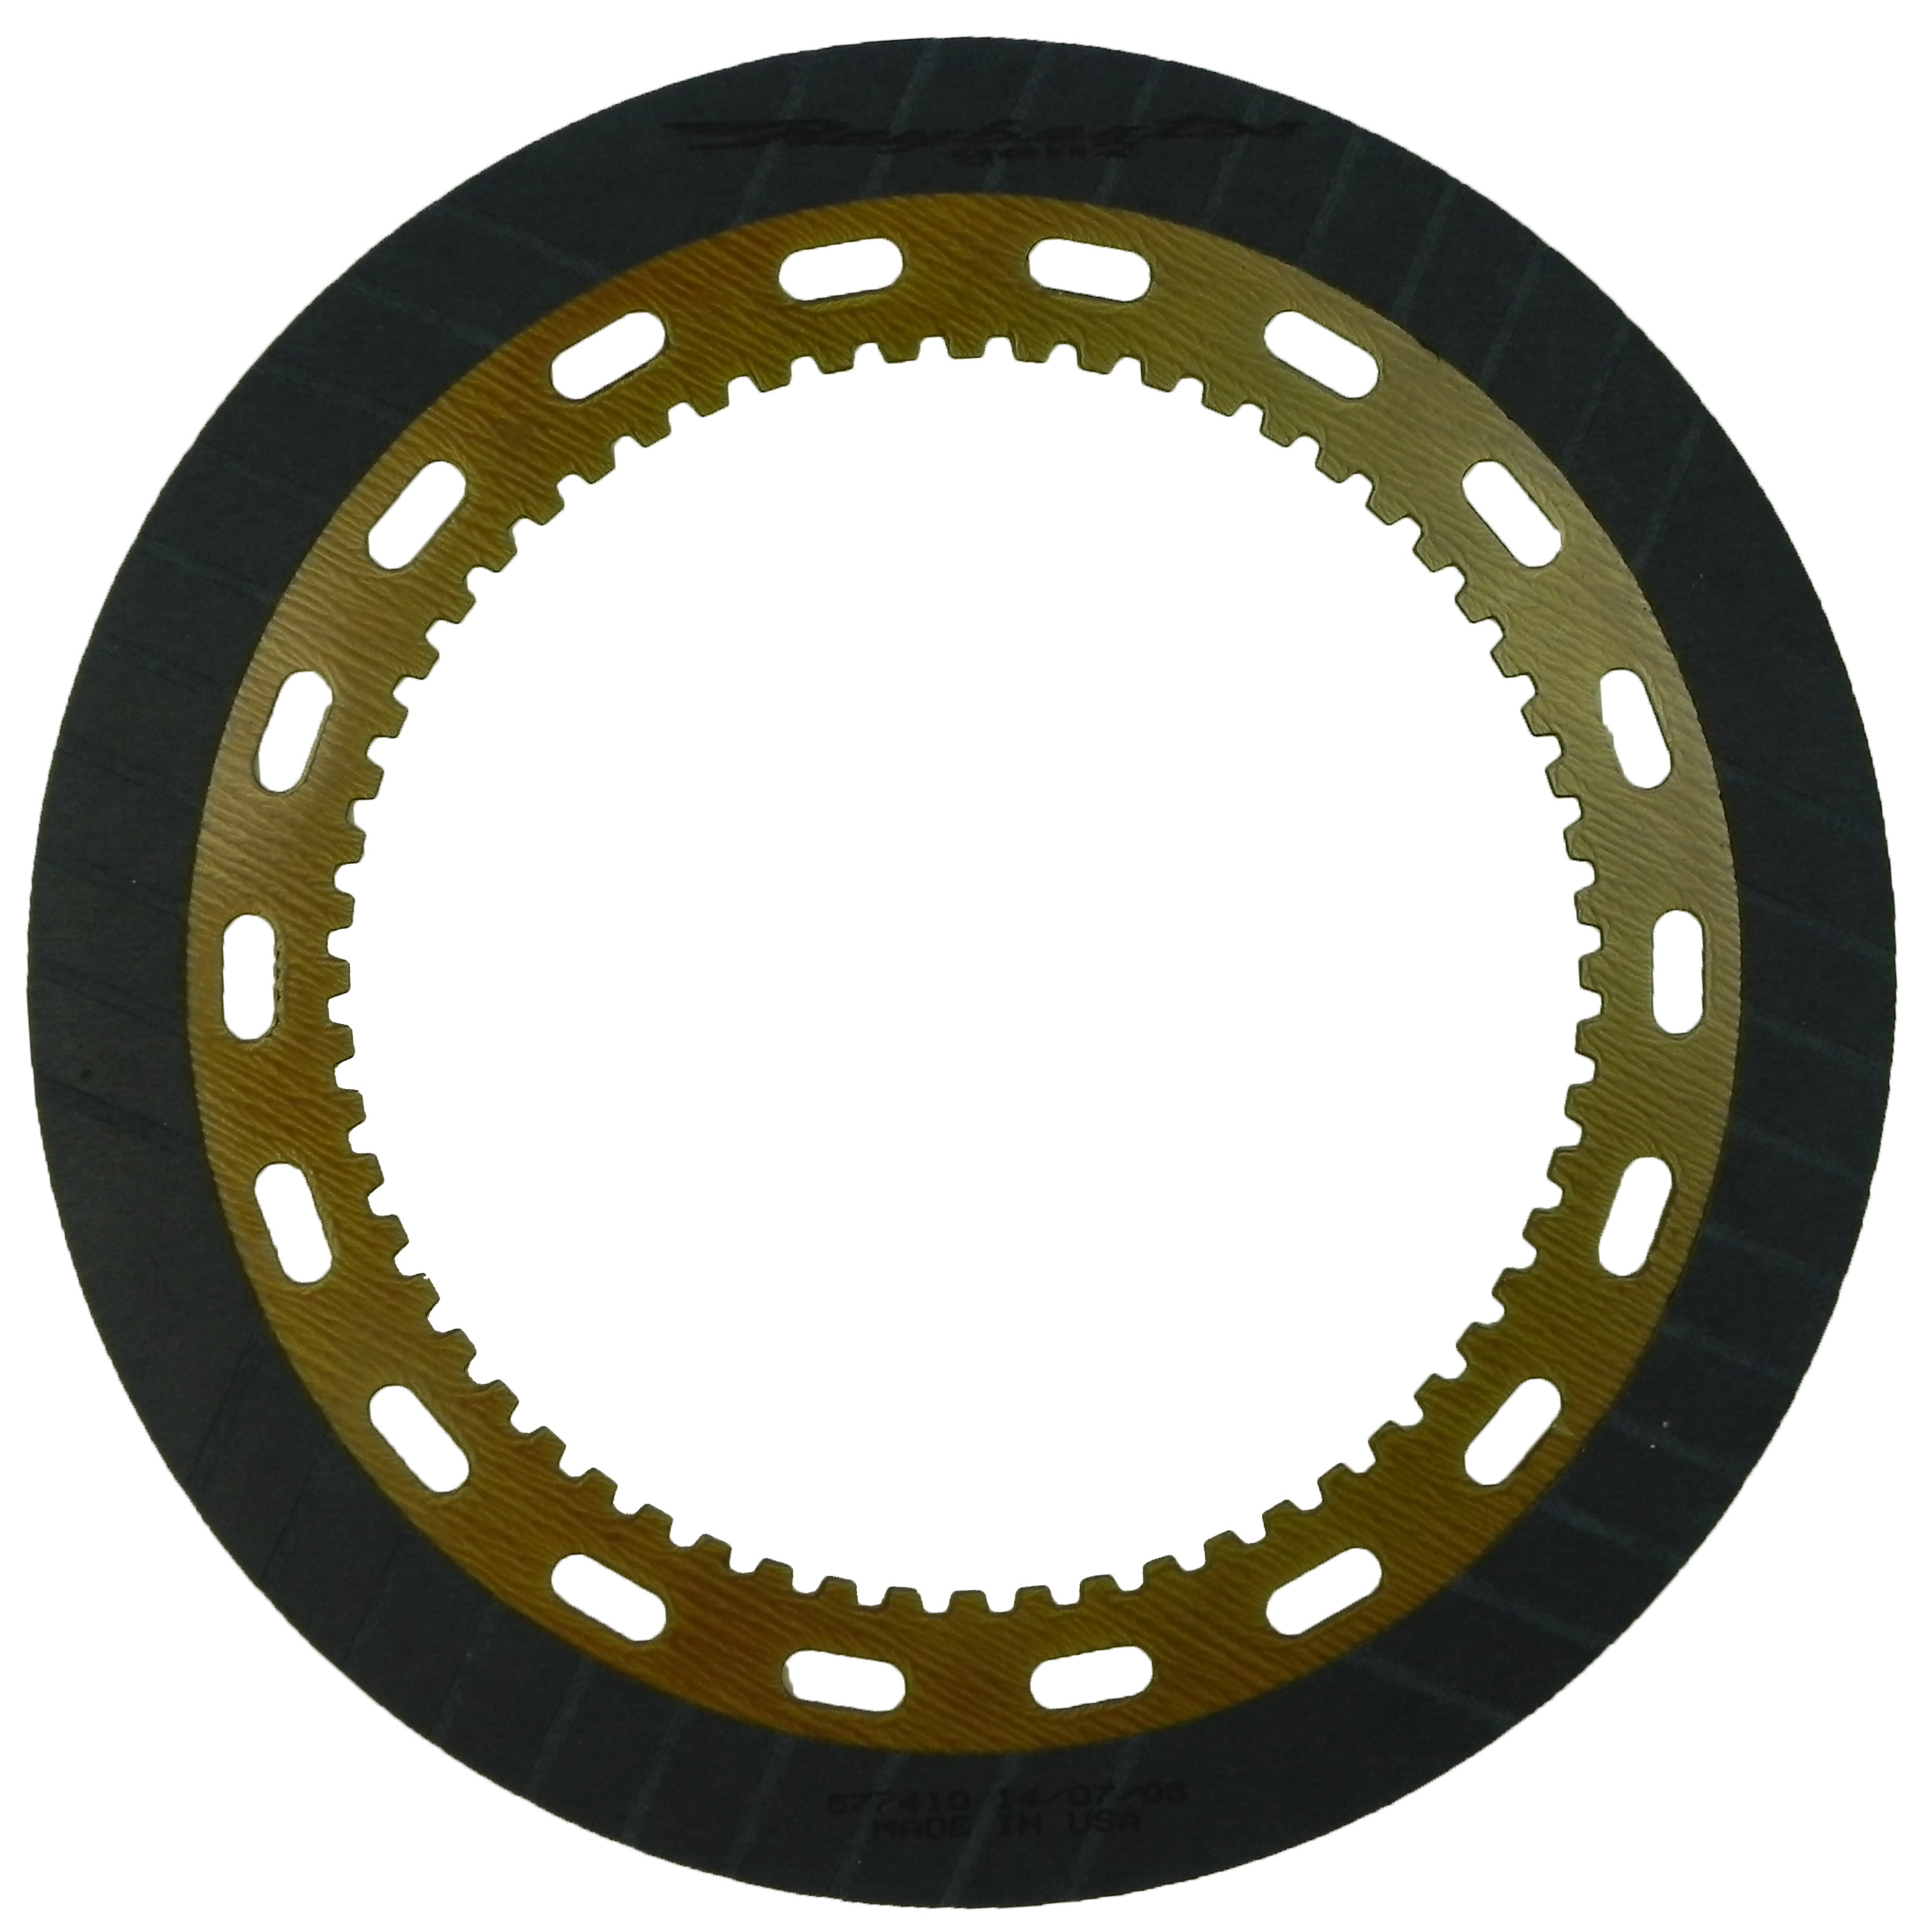 R577410 | 1969-1986 Friction Clutch Plate GEN 2, Blue Plate Special Intermediate GEN 2, Race Product